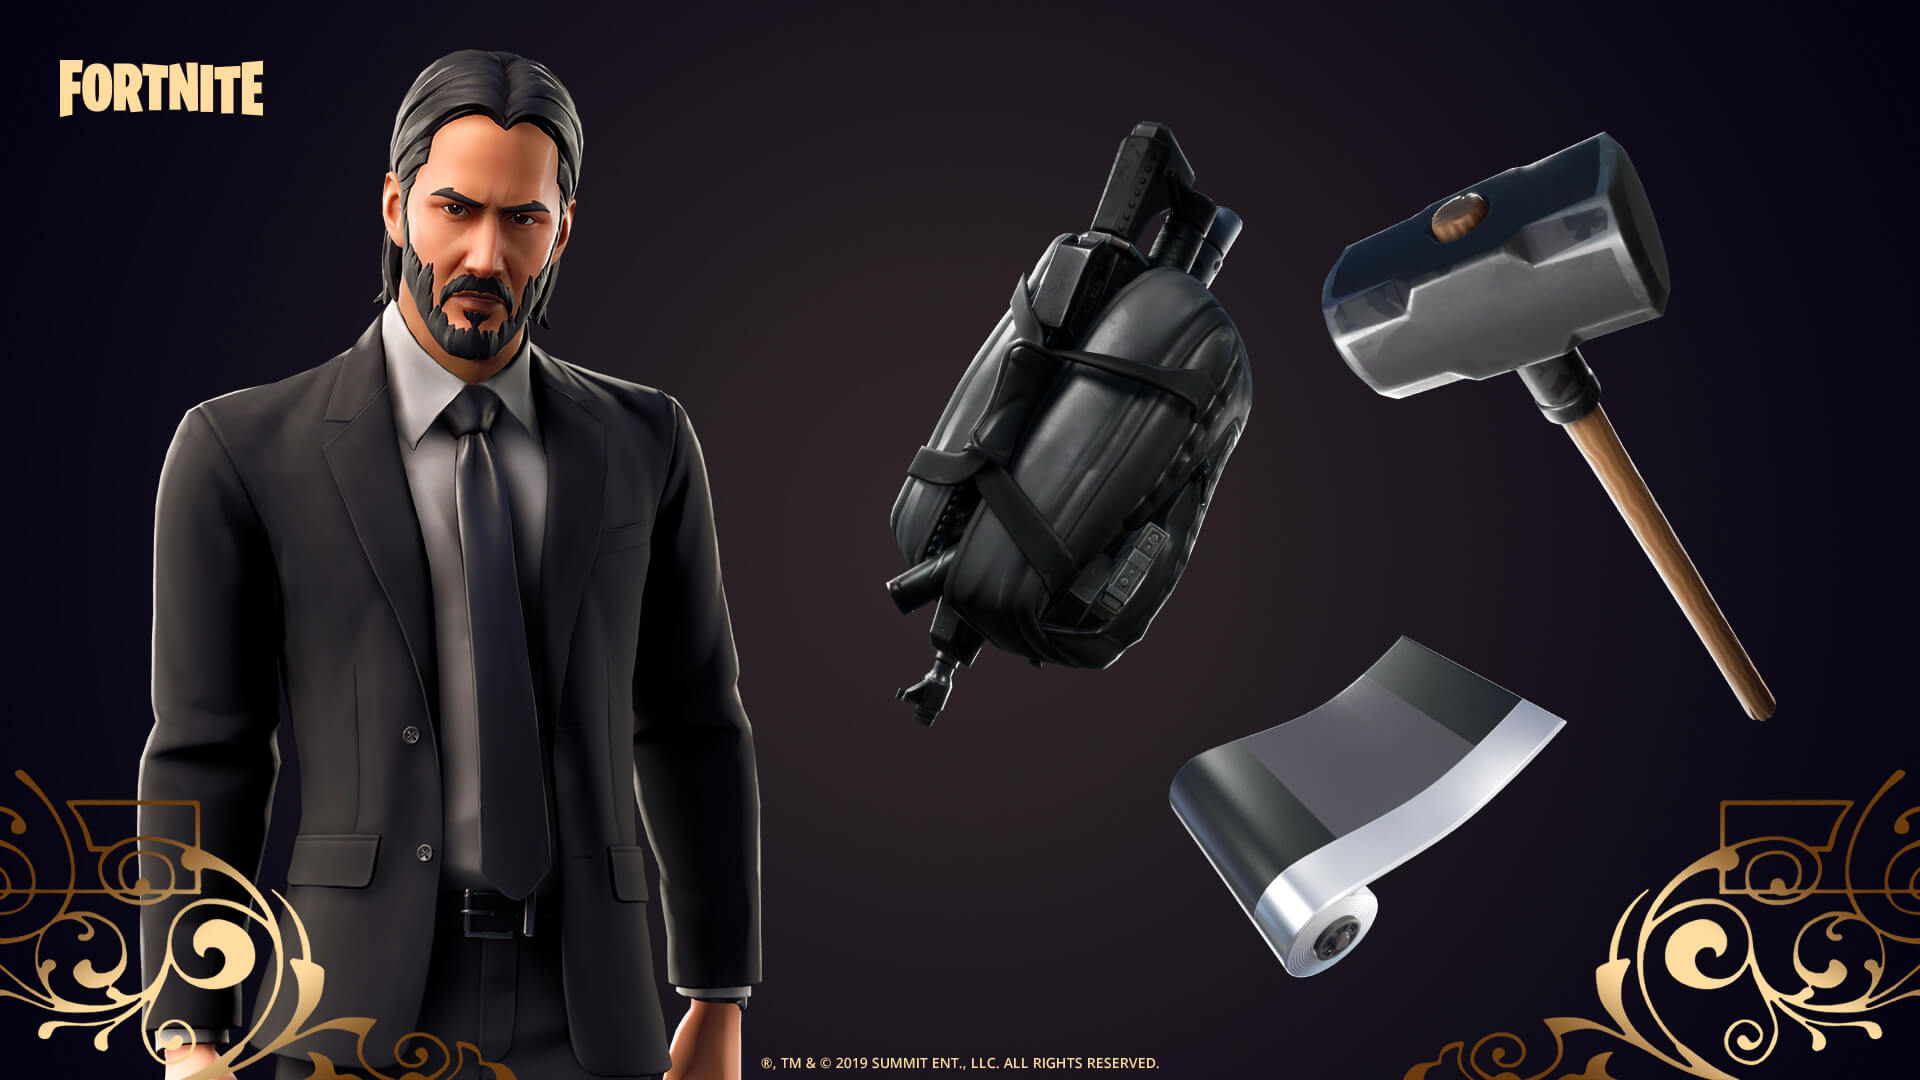 John Wick is officially in Fortnite - The Verge